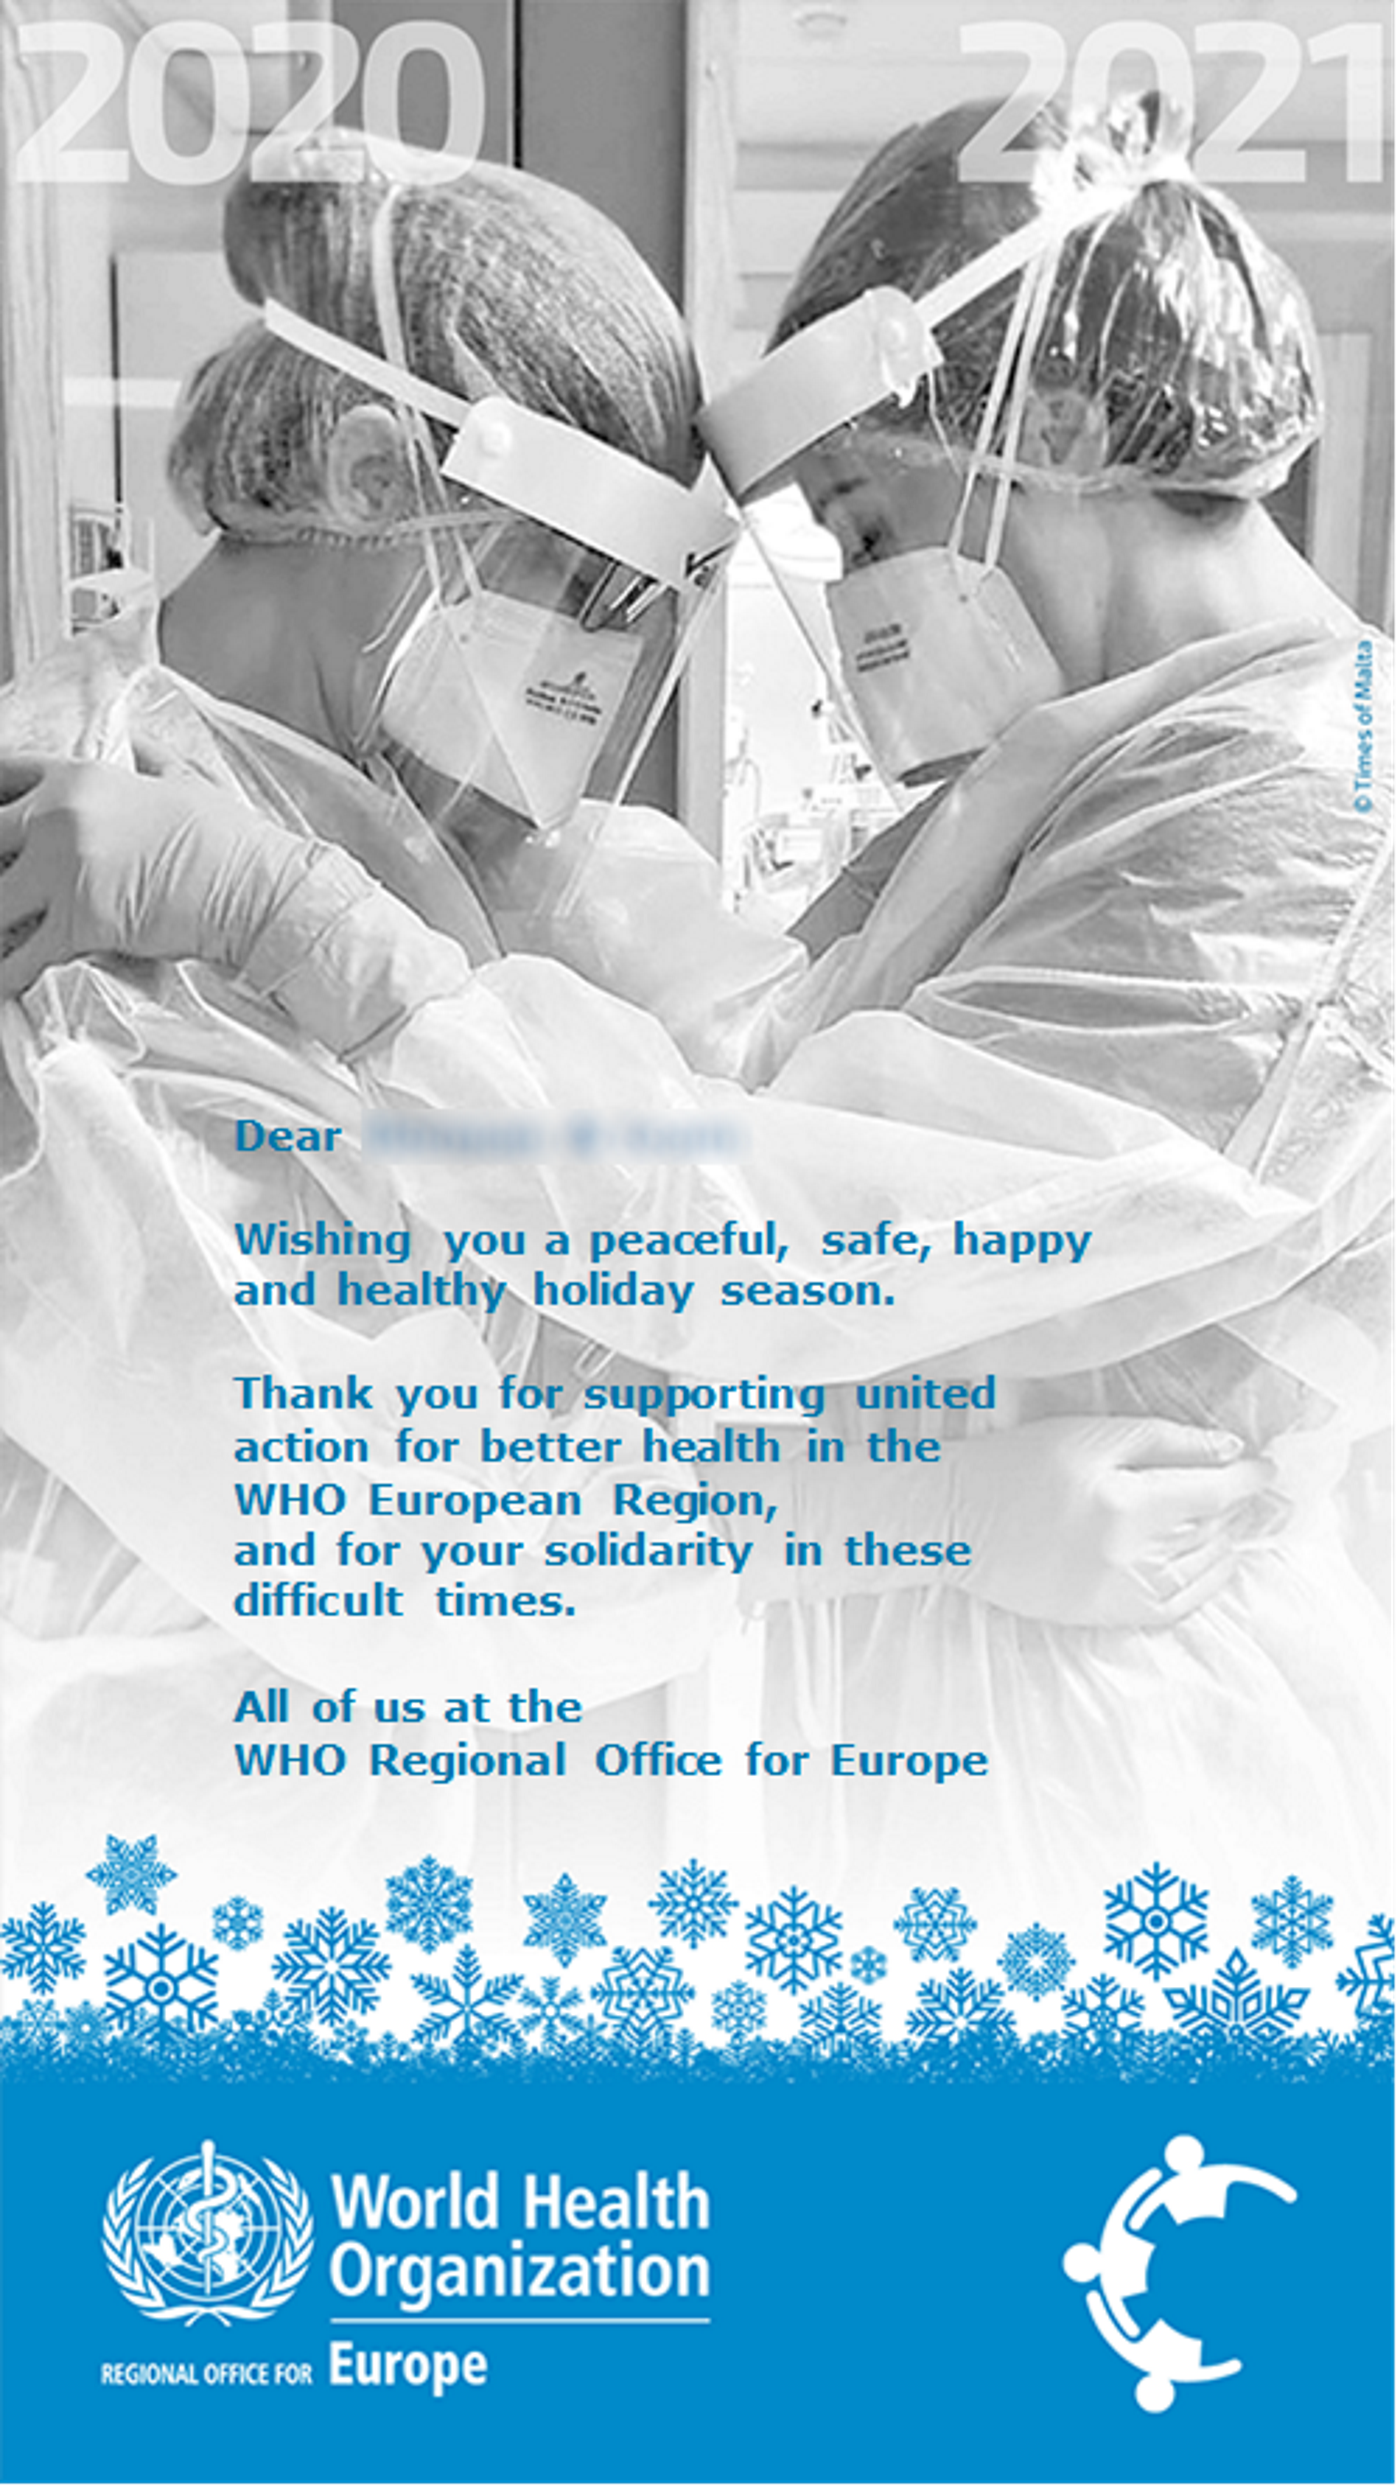 Picture of Maltese nurses embracing selected as WHO's Christmas greetings image